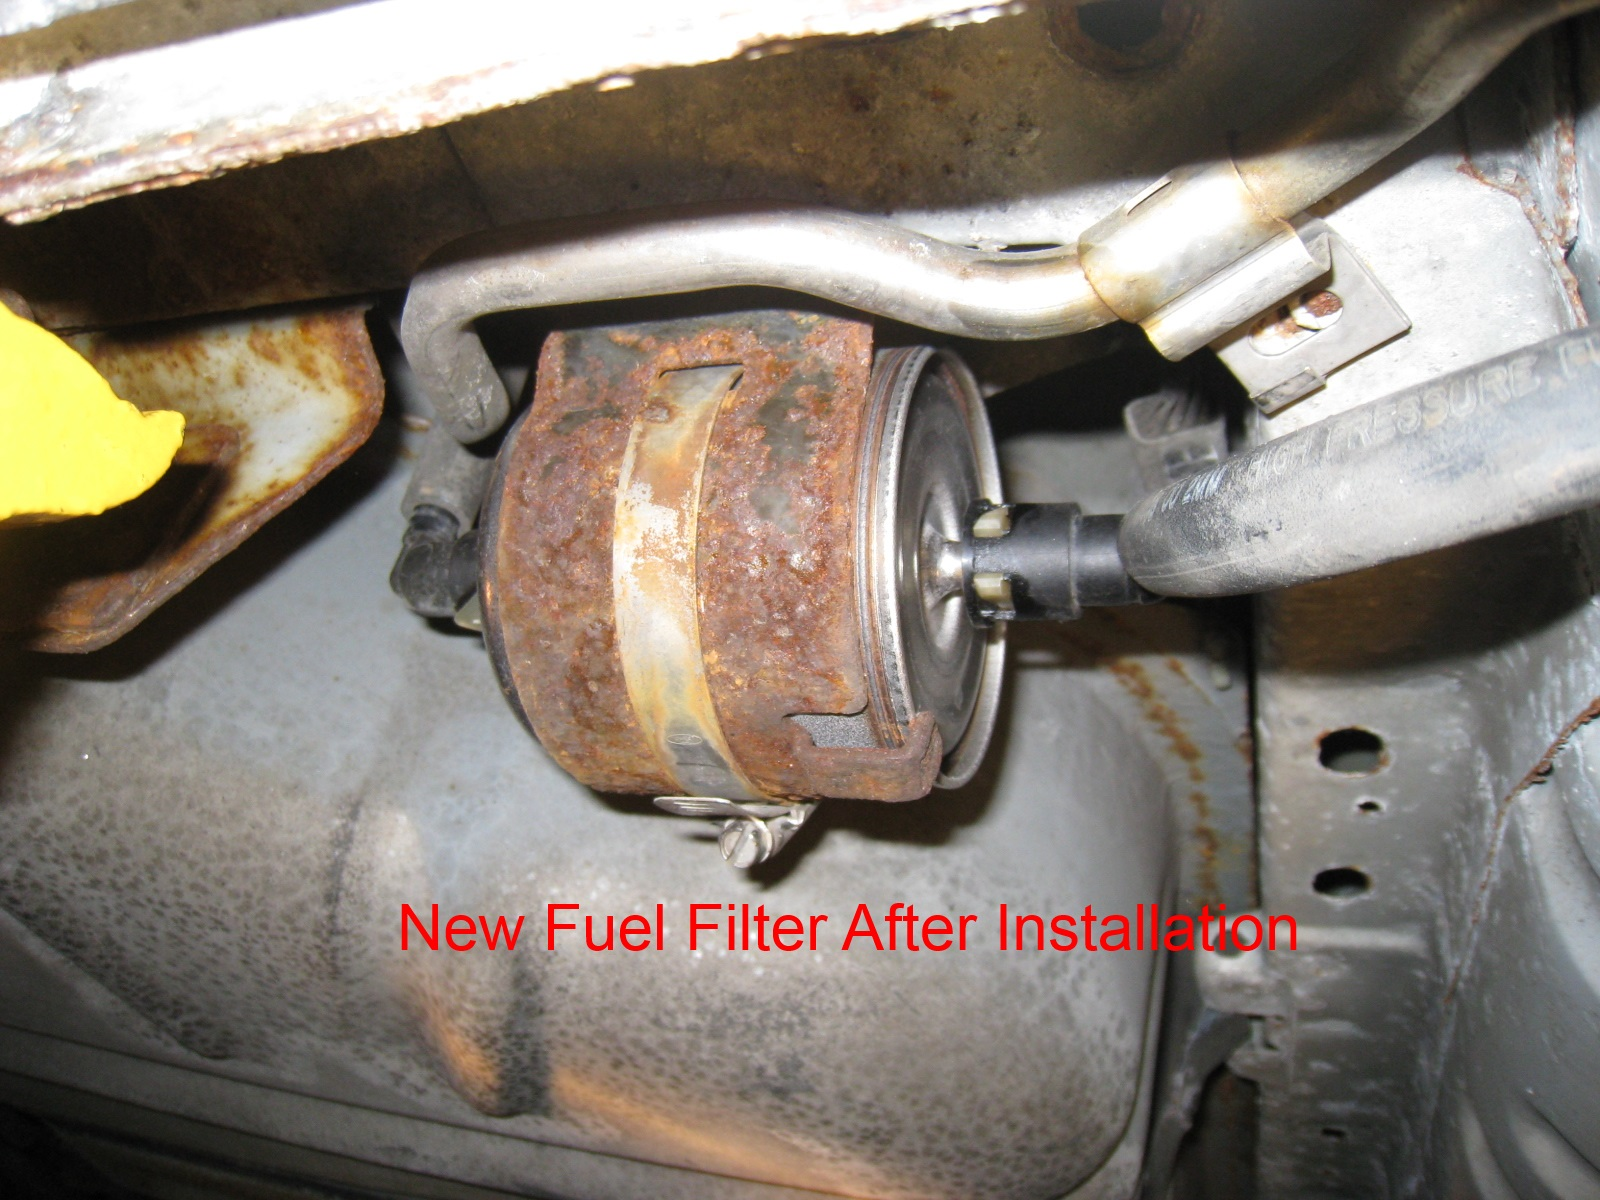 Ford Taurus Fuel Filter Replacement | Wiring Diagram